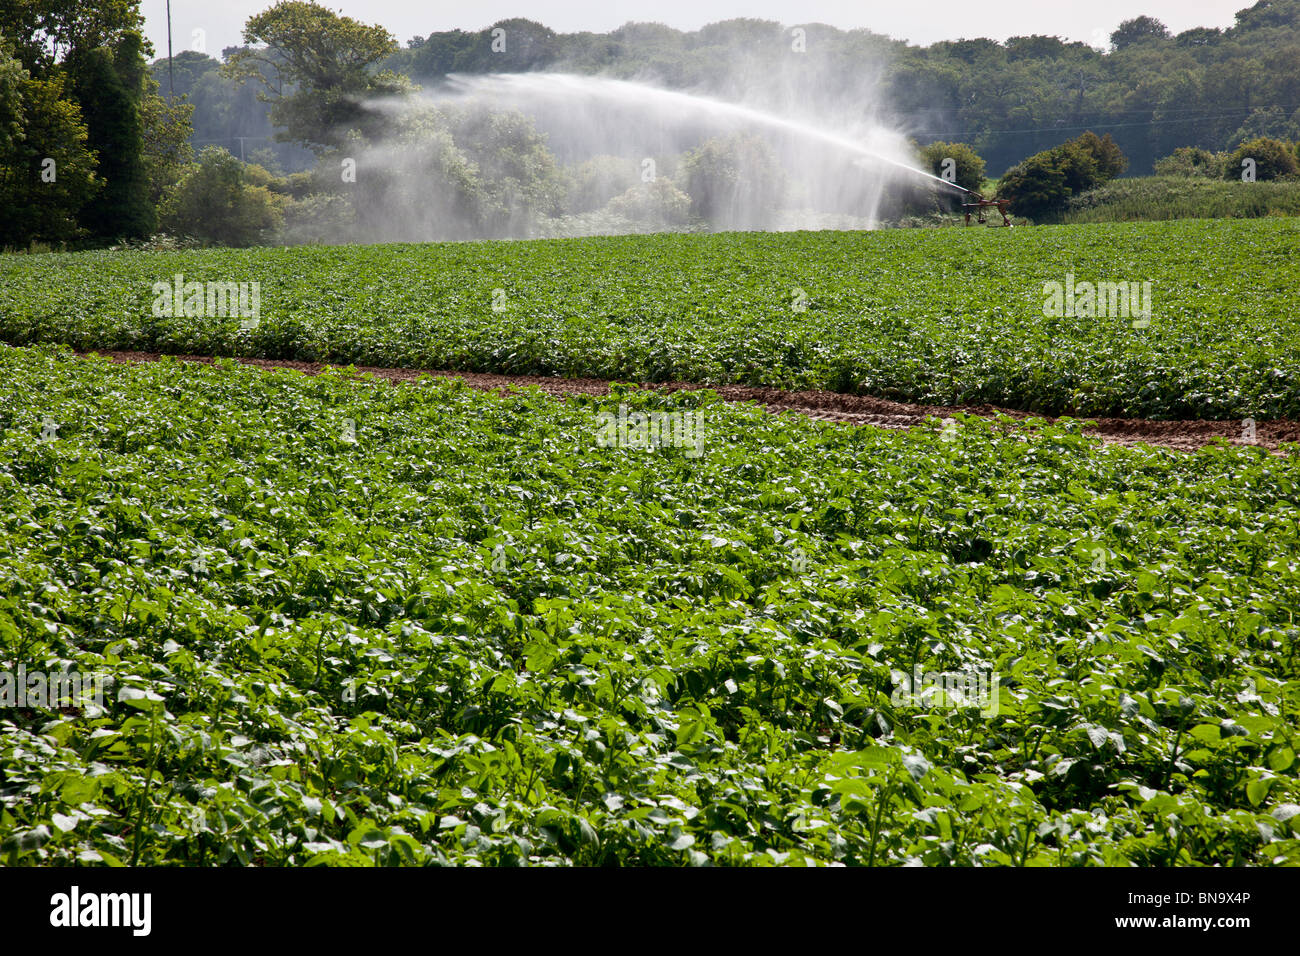 Potato field near Cromer, Norfolk, being irrigated (as seen from the Weavers Way public right of way.) - Stock Image